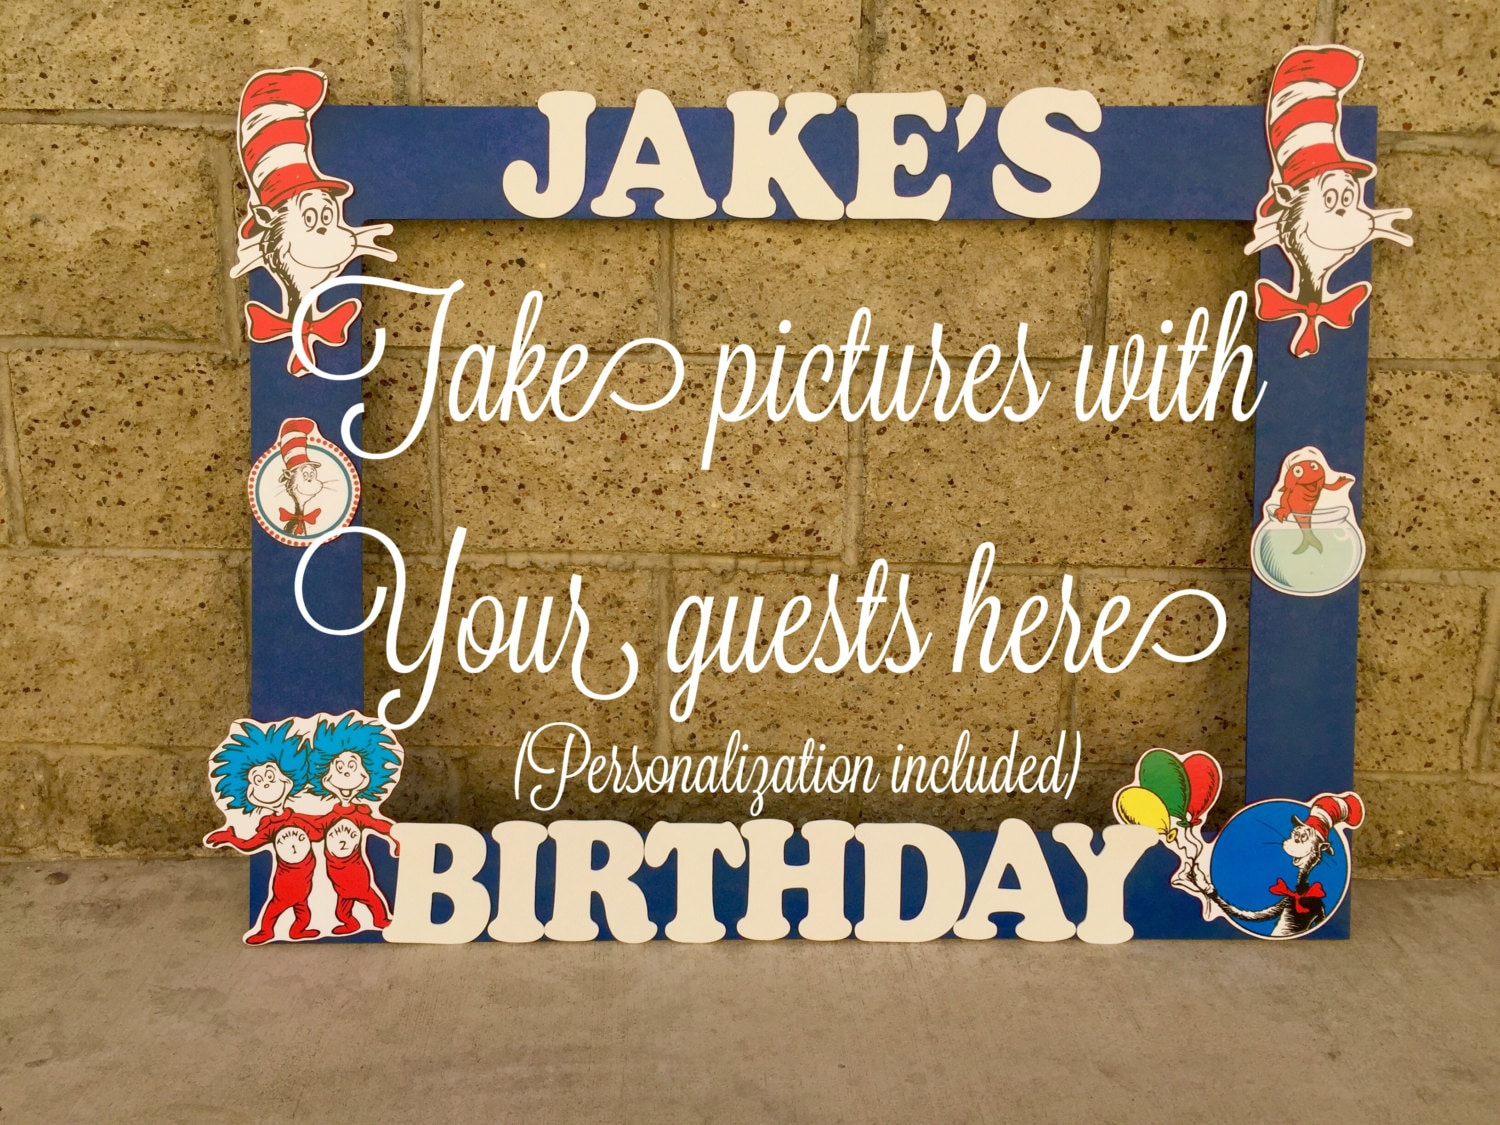 Dr Seuss photo frame booth Baby Shower birthday party picture